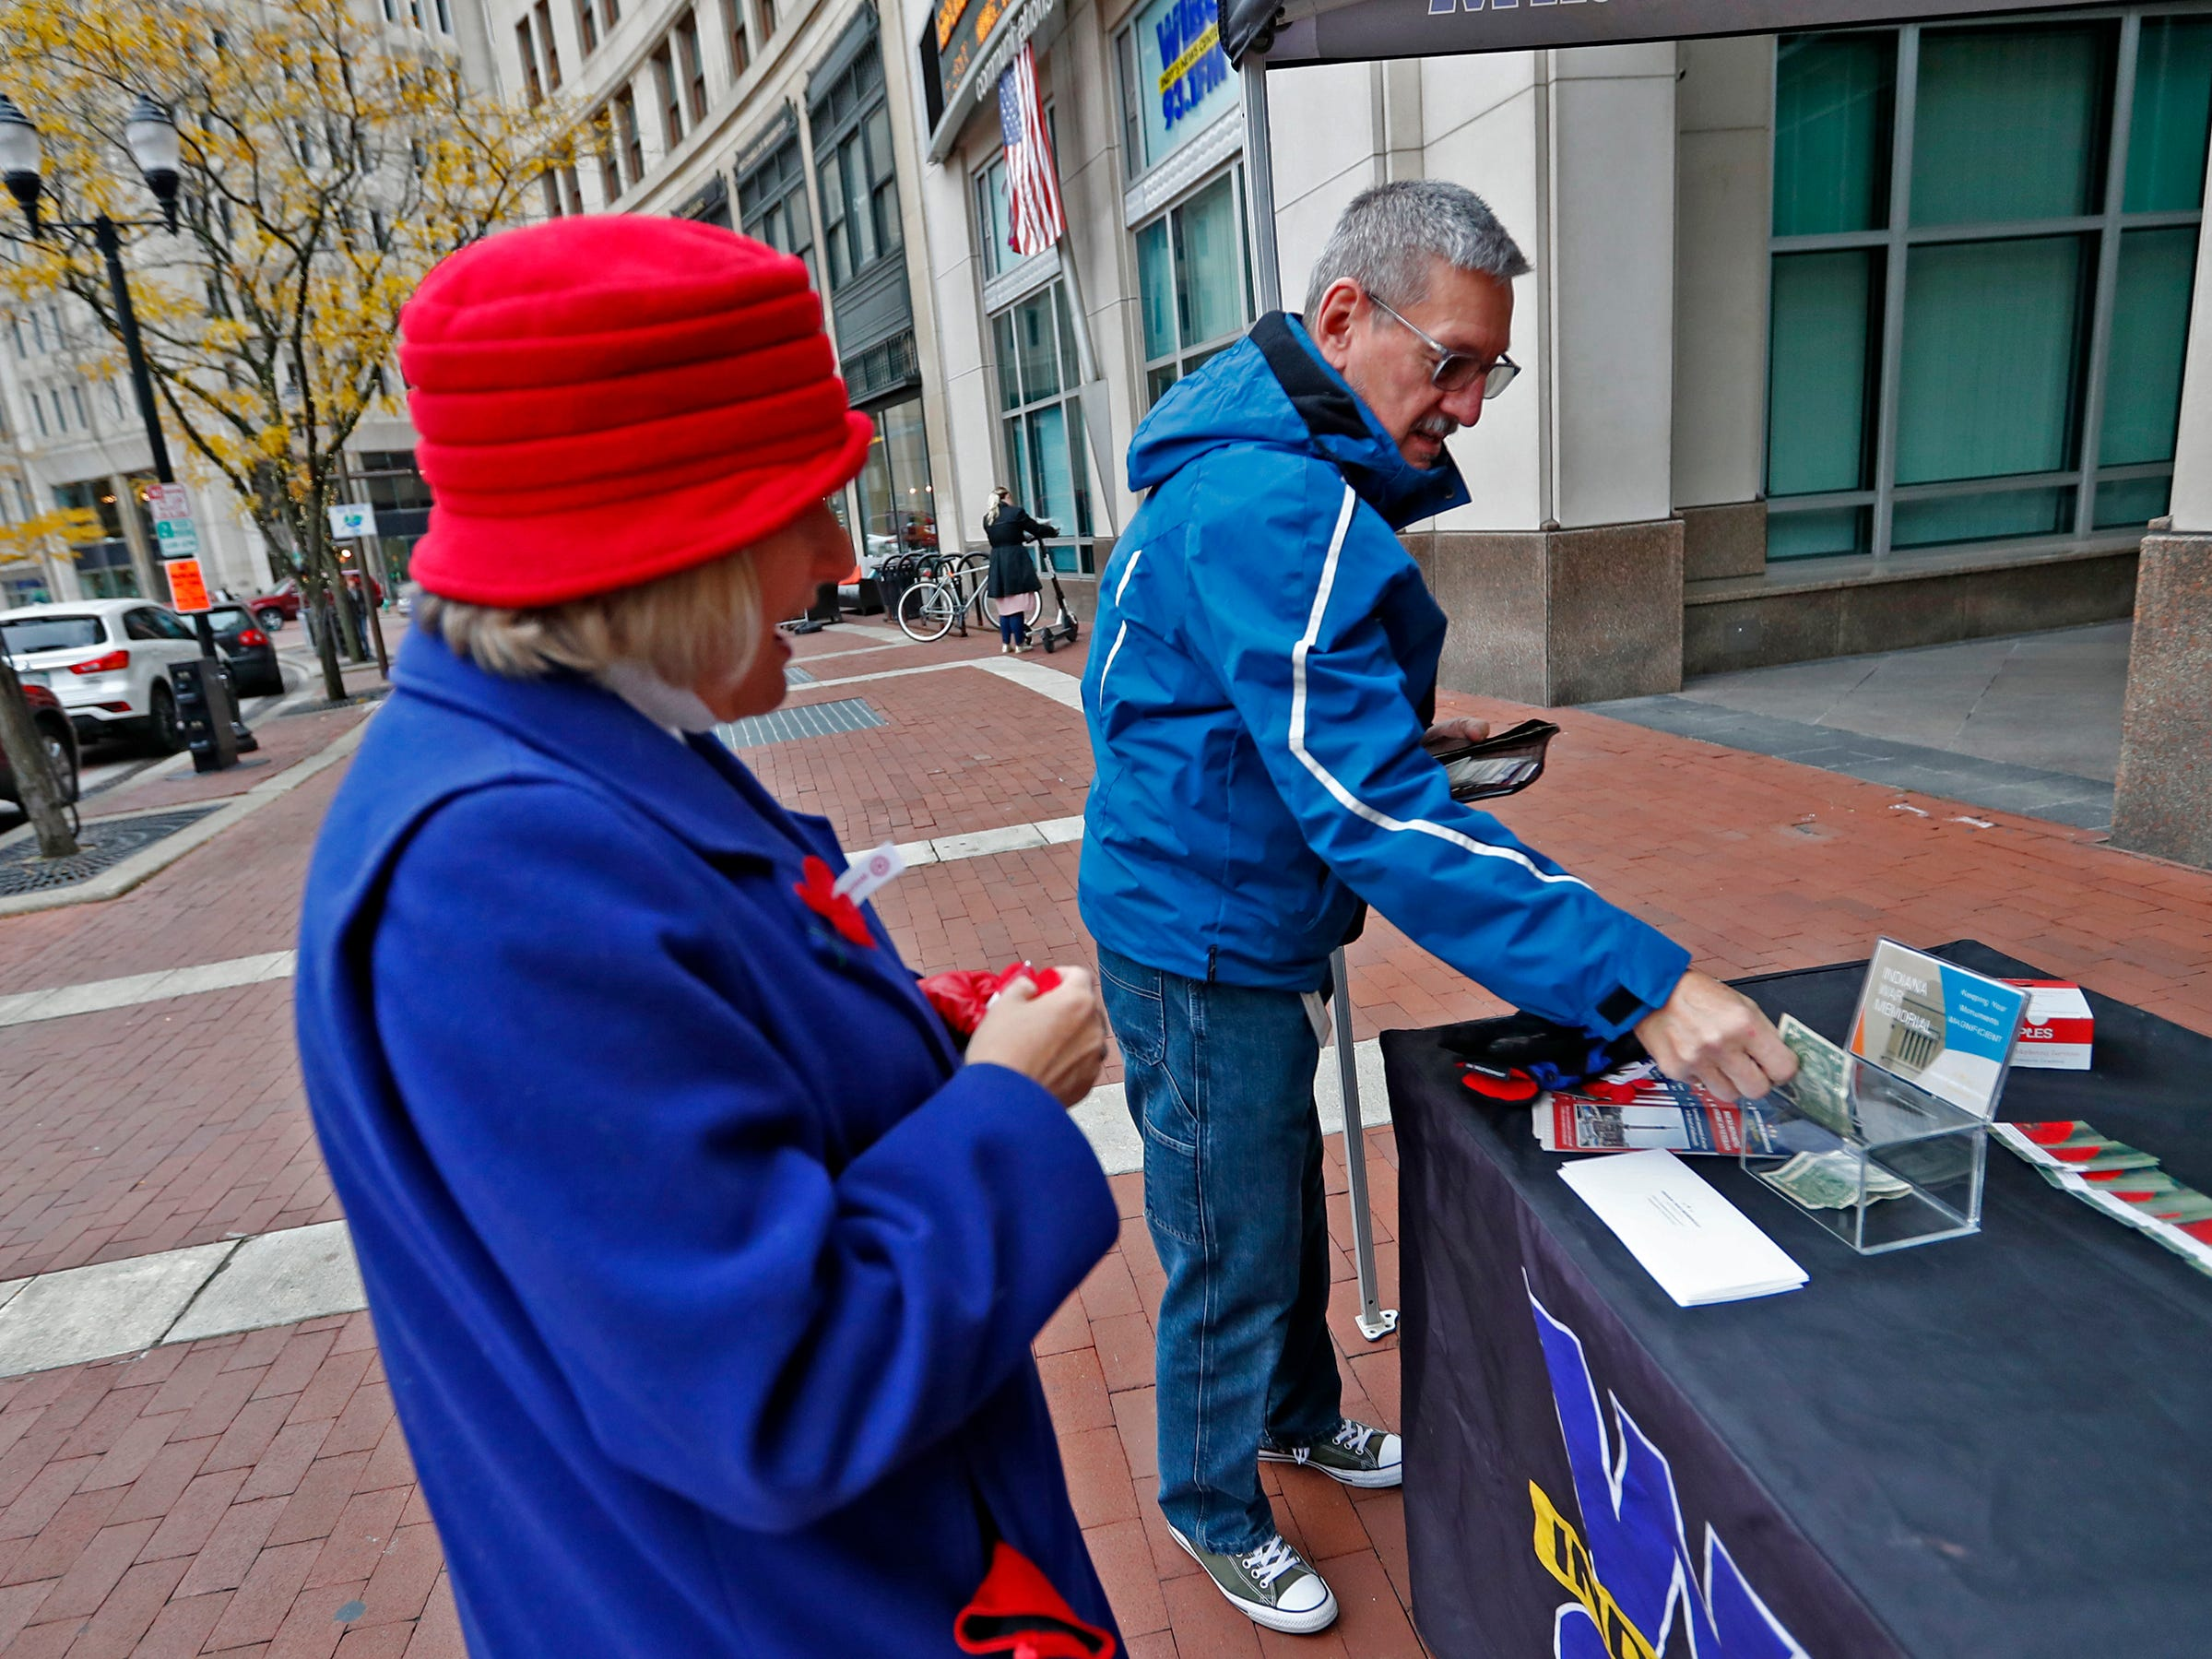 Bill Carlson, right, makes a donation after Marie Beason, Executive Director of the Indiana War Memorials Foundation, gave him a free Remembrance Poppy from the Indiana War Memorials Foundation (IWMF) and Emmis Communications, on Monument Circle, Friday, Nov. 9, 2018.  The flower give-away is in celebration of Veterans Day and the 100th anniversary of the end of World War I.